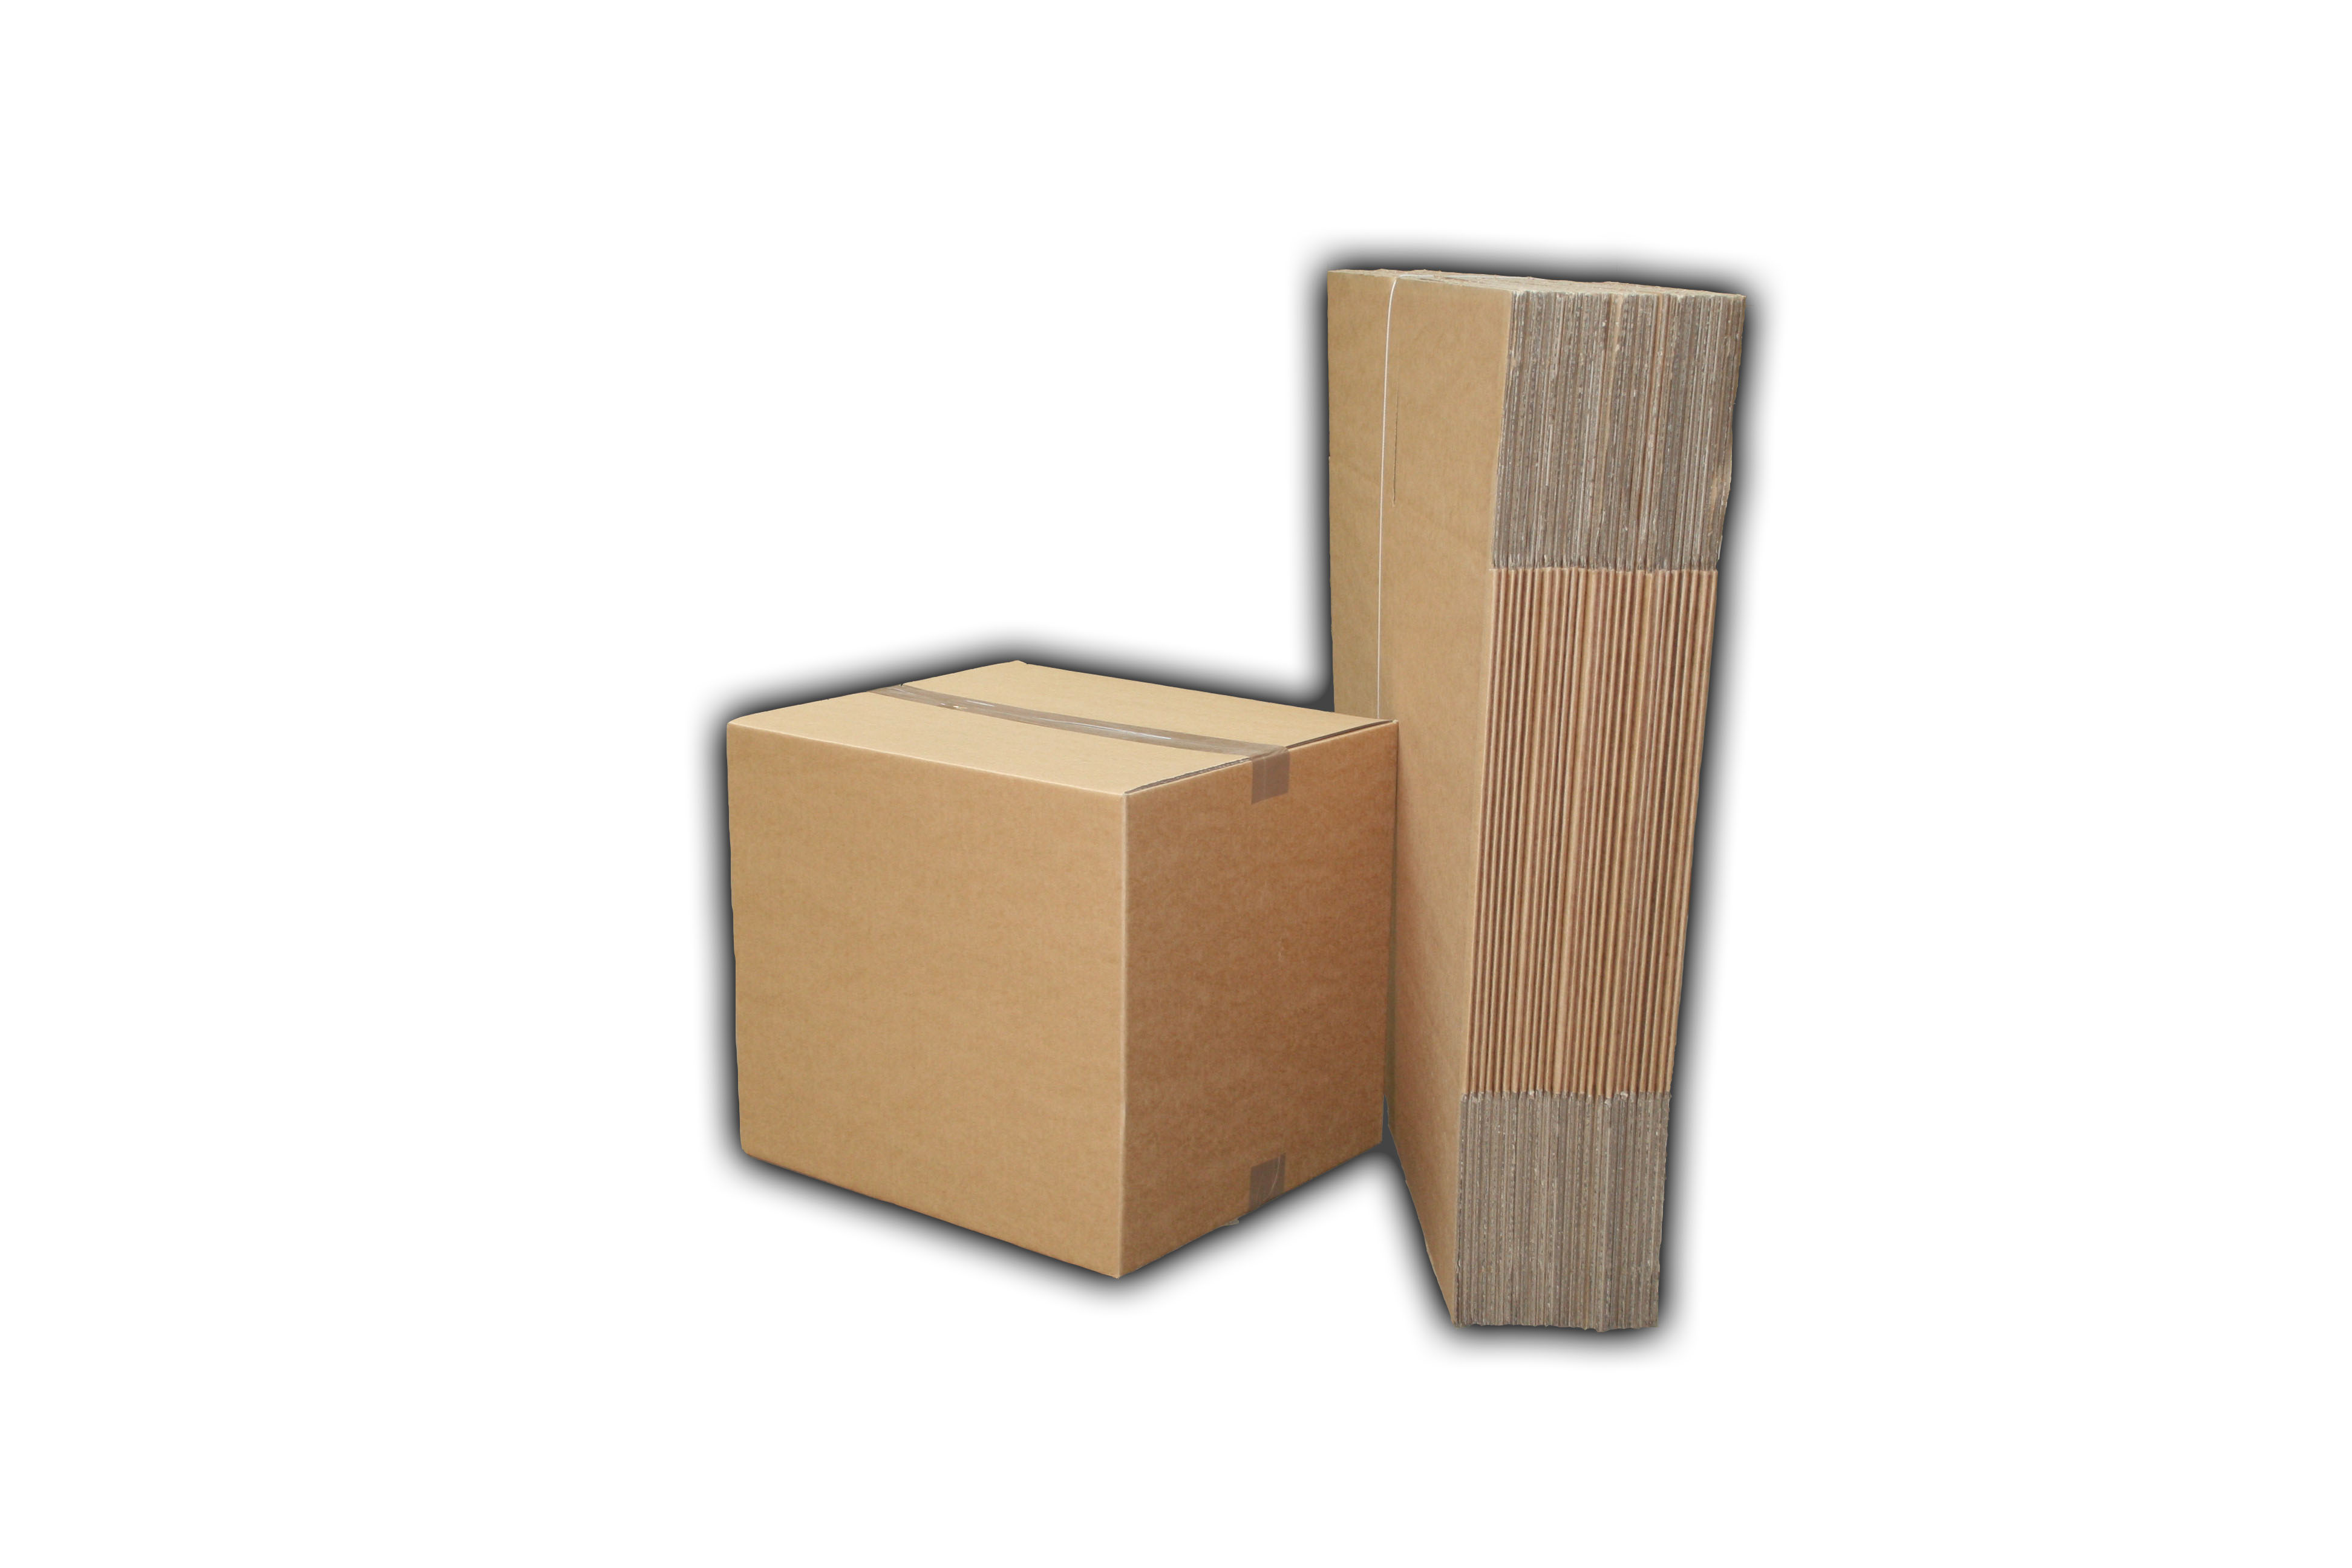 Packs of Packing Boxes